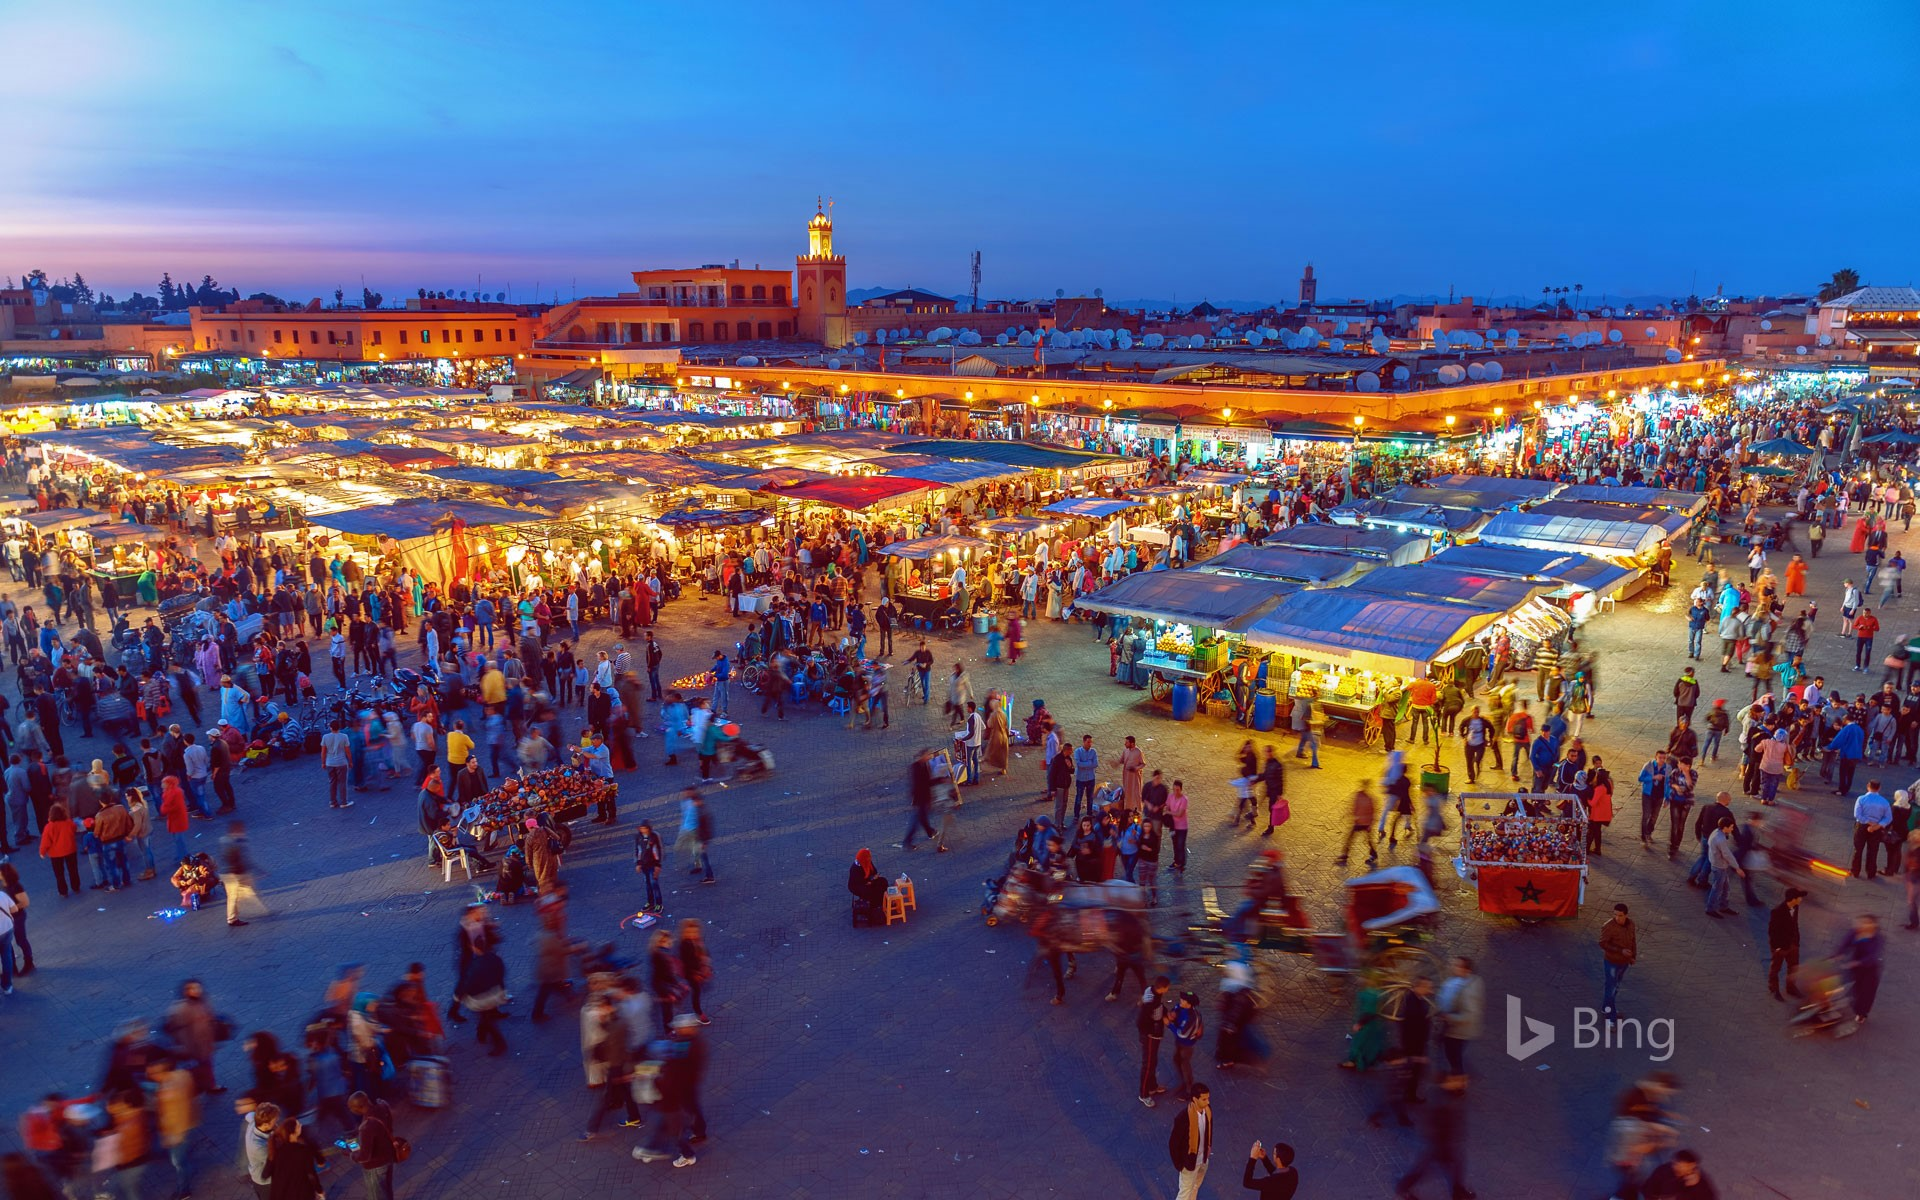 Jemaa el-Fnaa Square in Marrakesh, Morocco